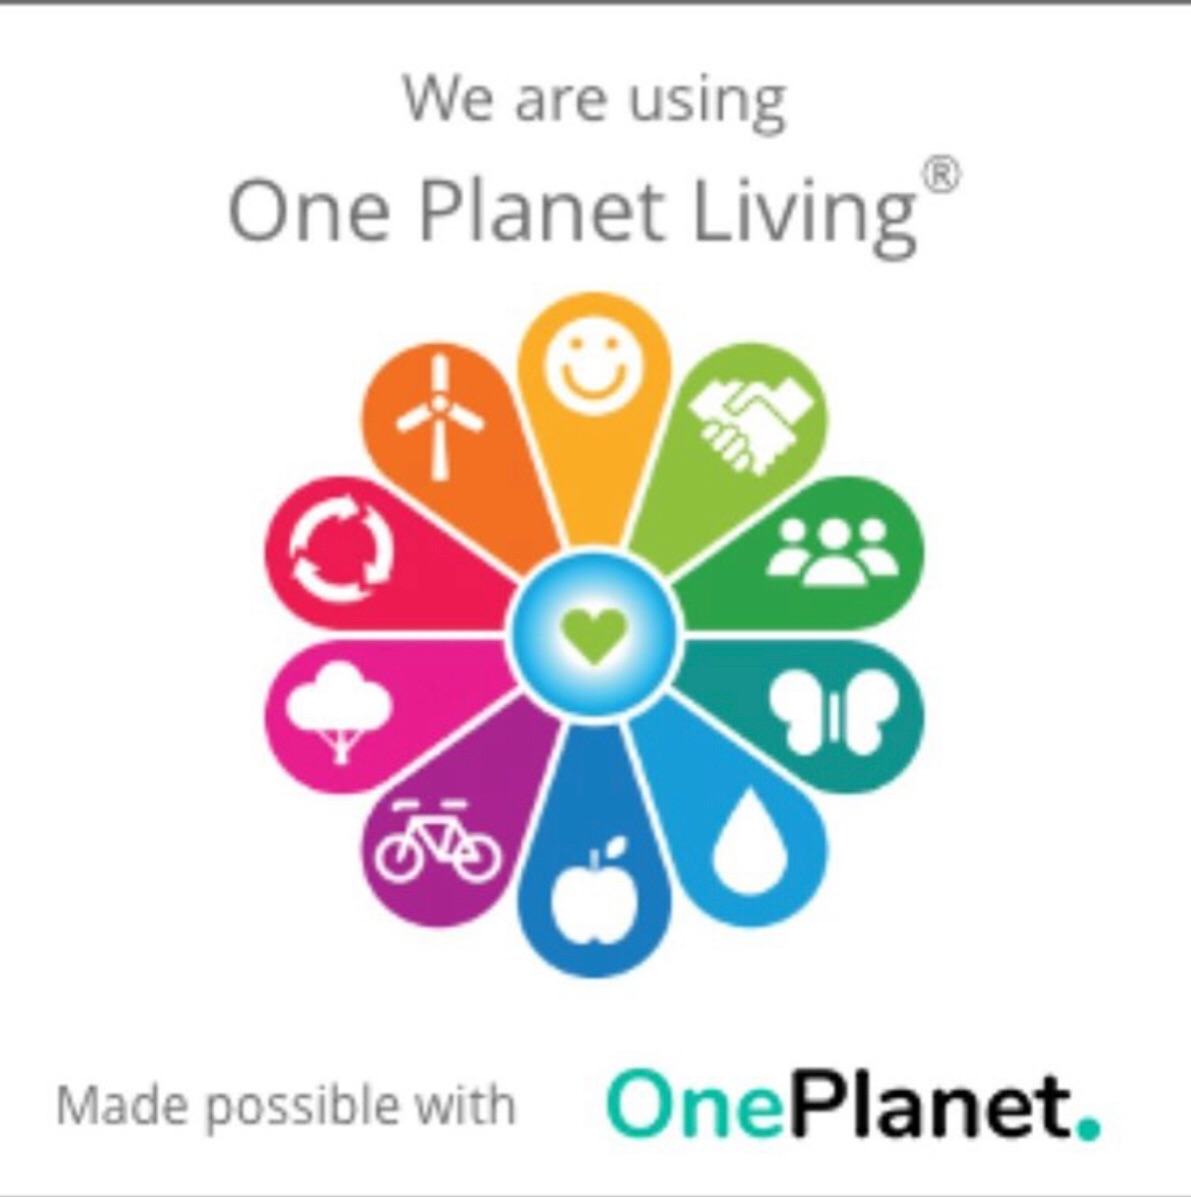 One Planet Living advice on using fewer planets